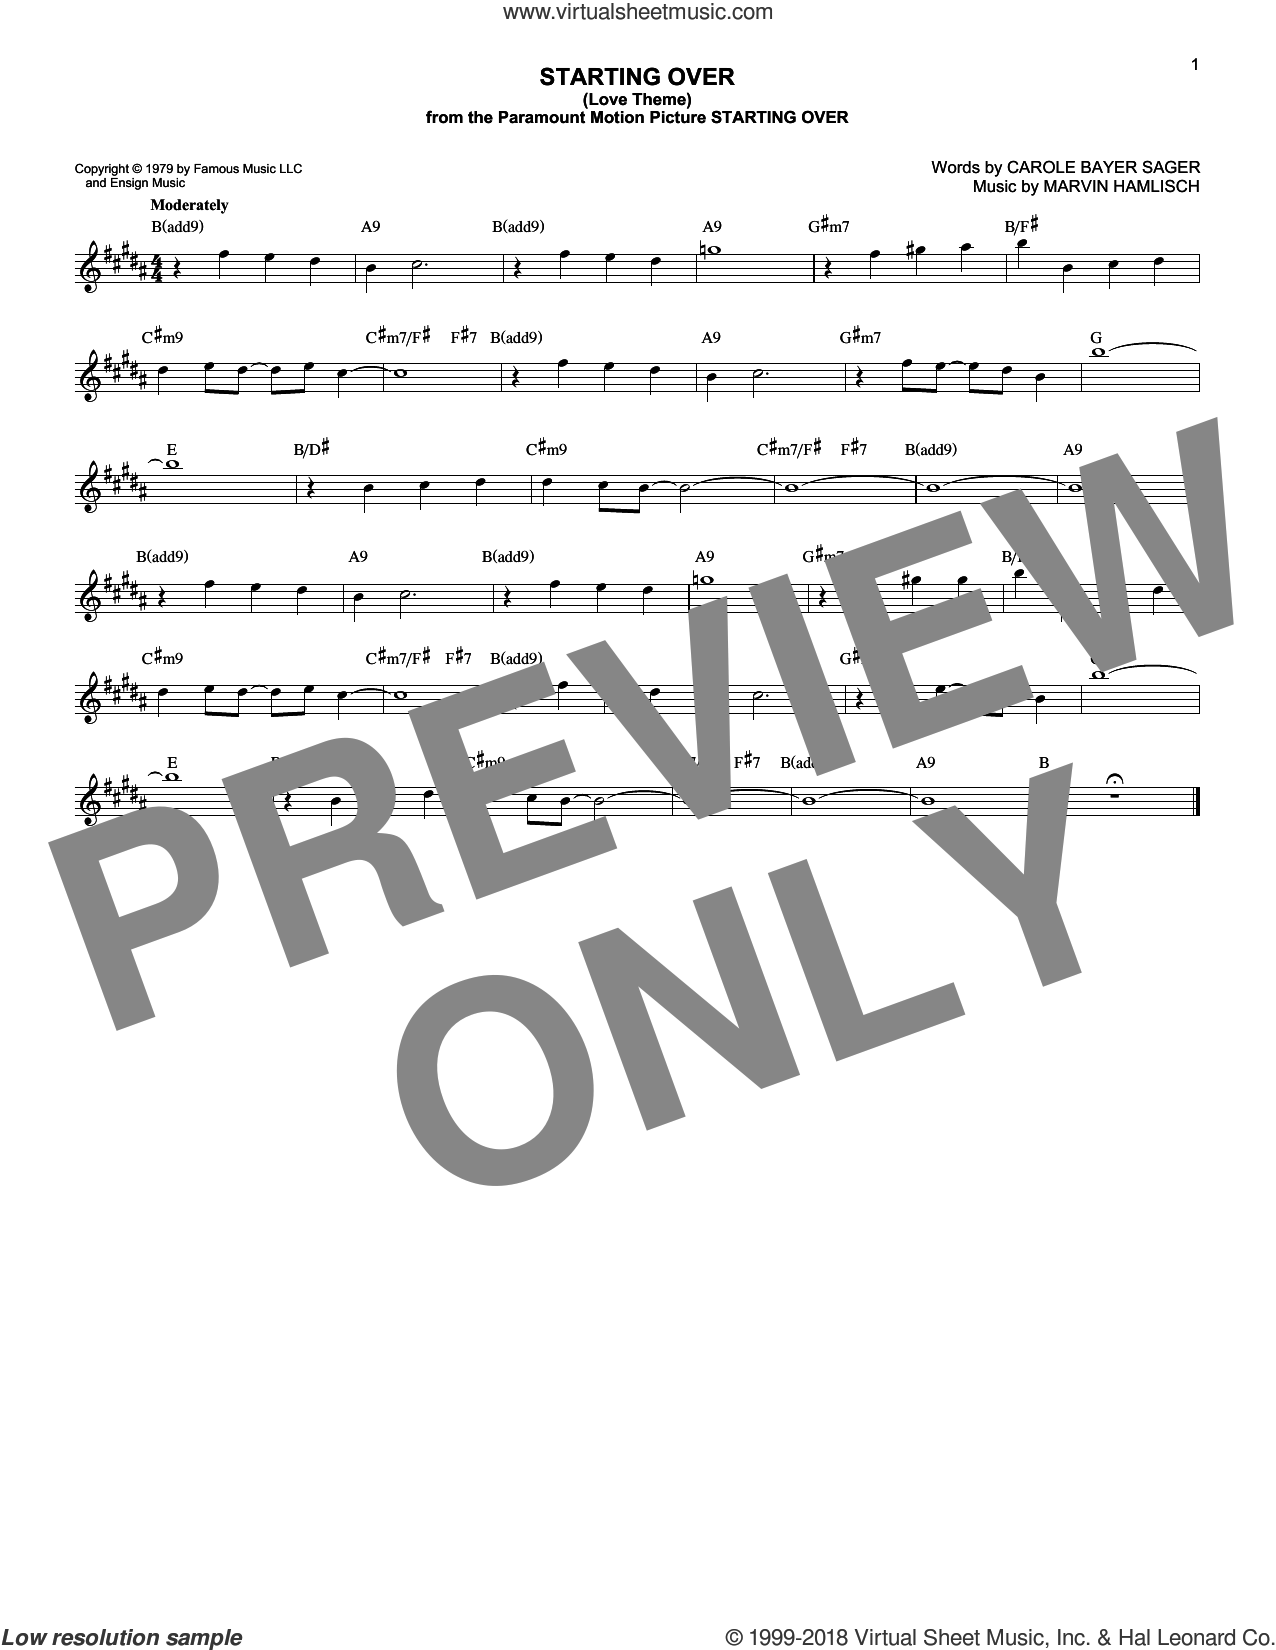 Starting Over (Love Theme) sheet music for voice and other instruments (fake book) by Carole Bayer Sager and Marvin Hamlisch. Score Image Preview.